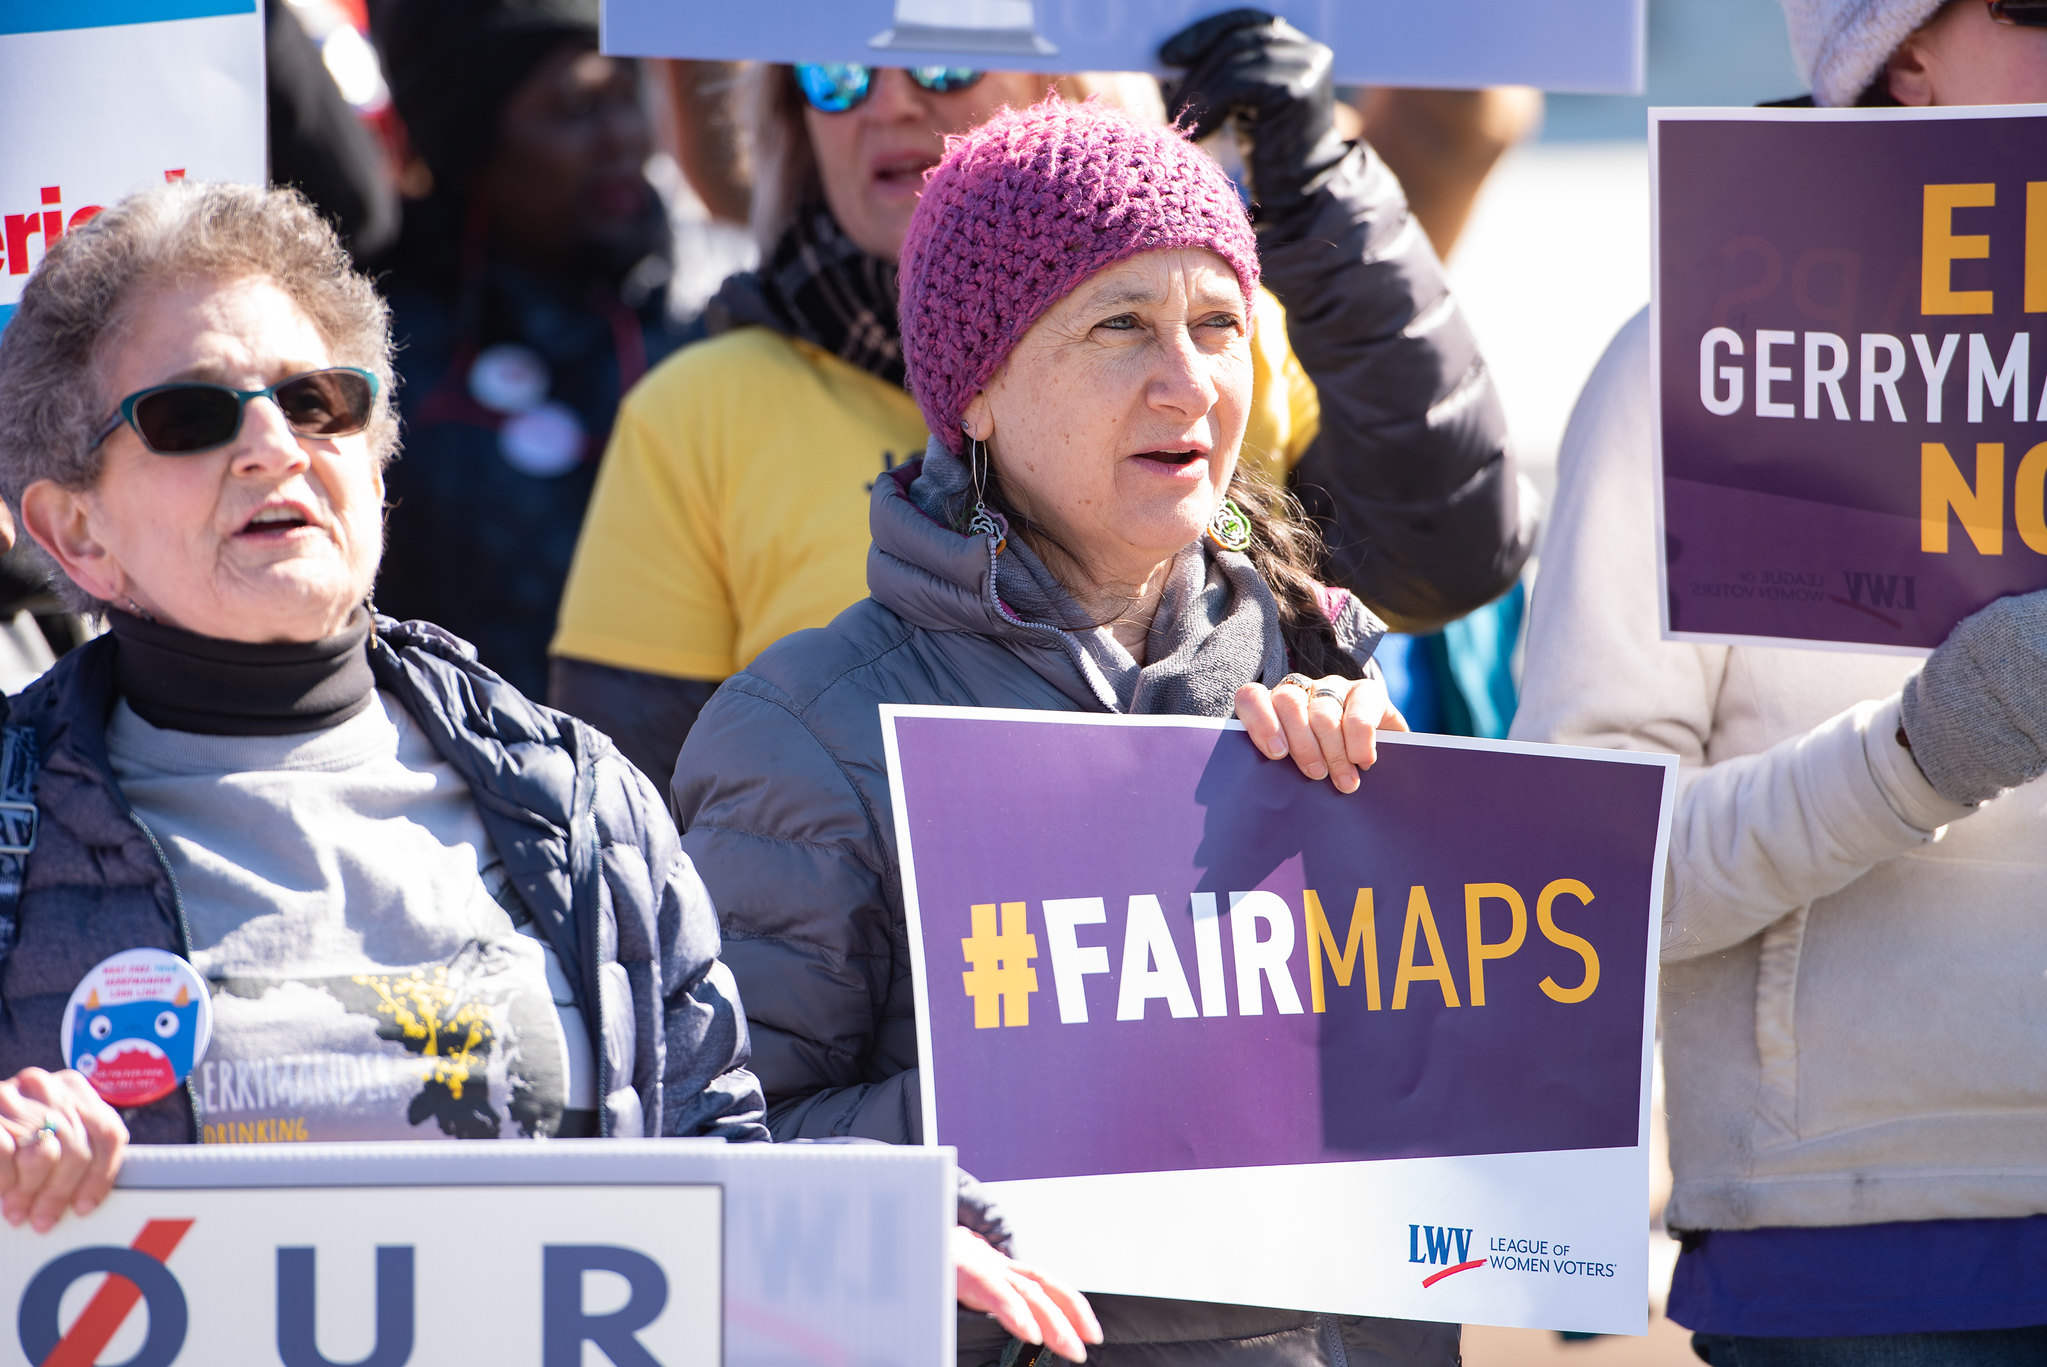 People hold signs about Fair Maps